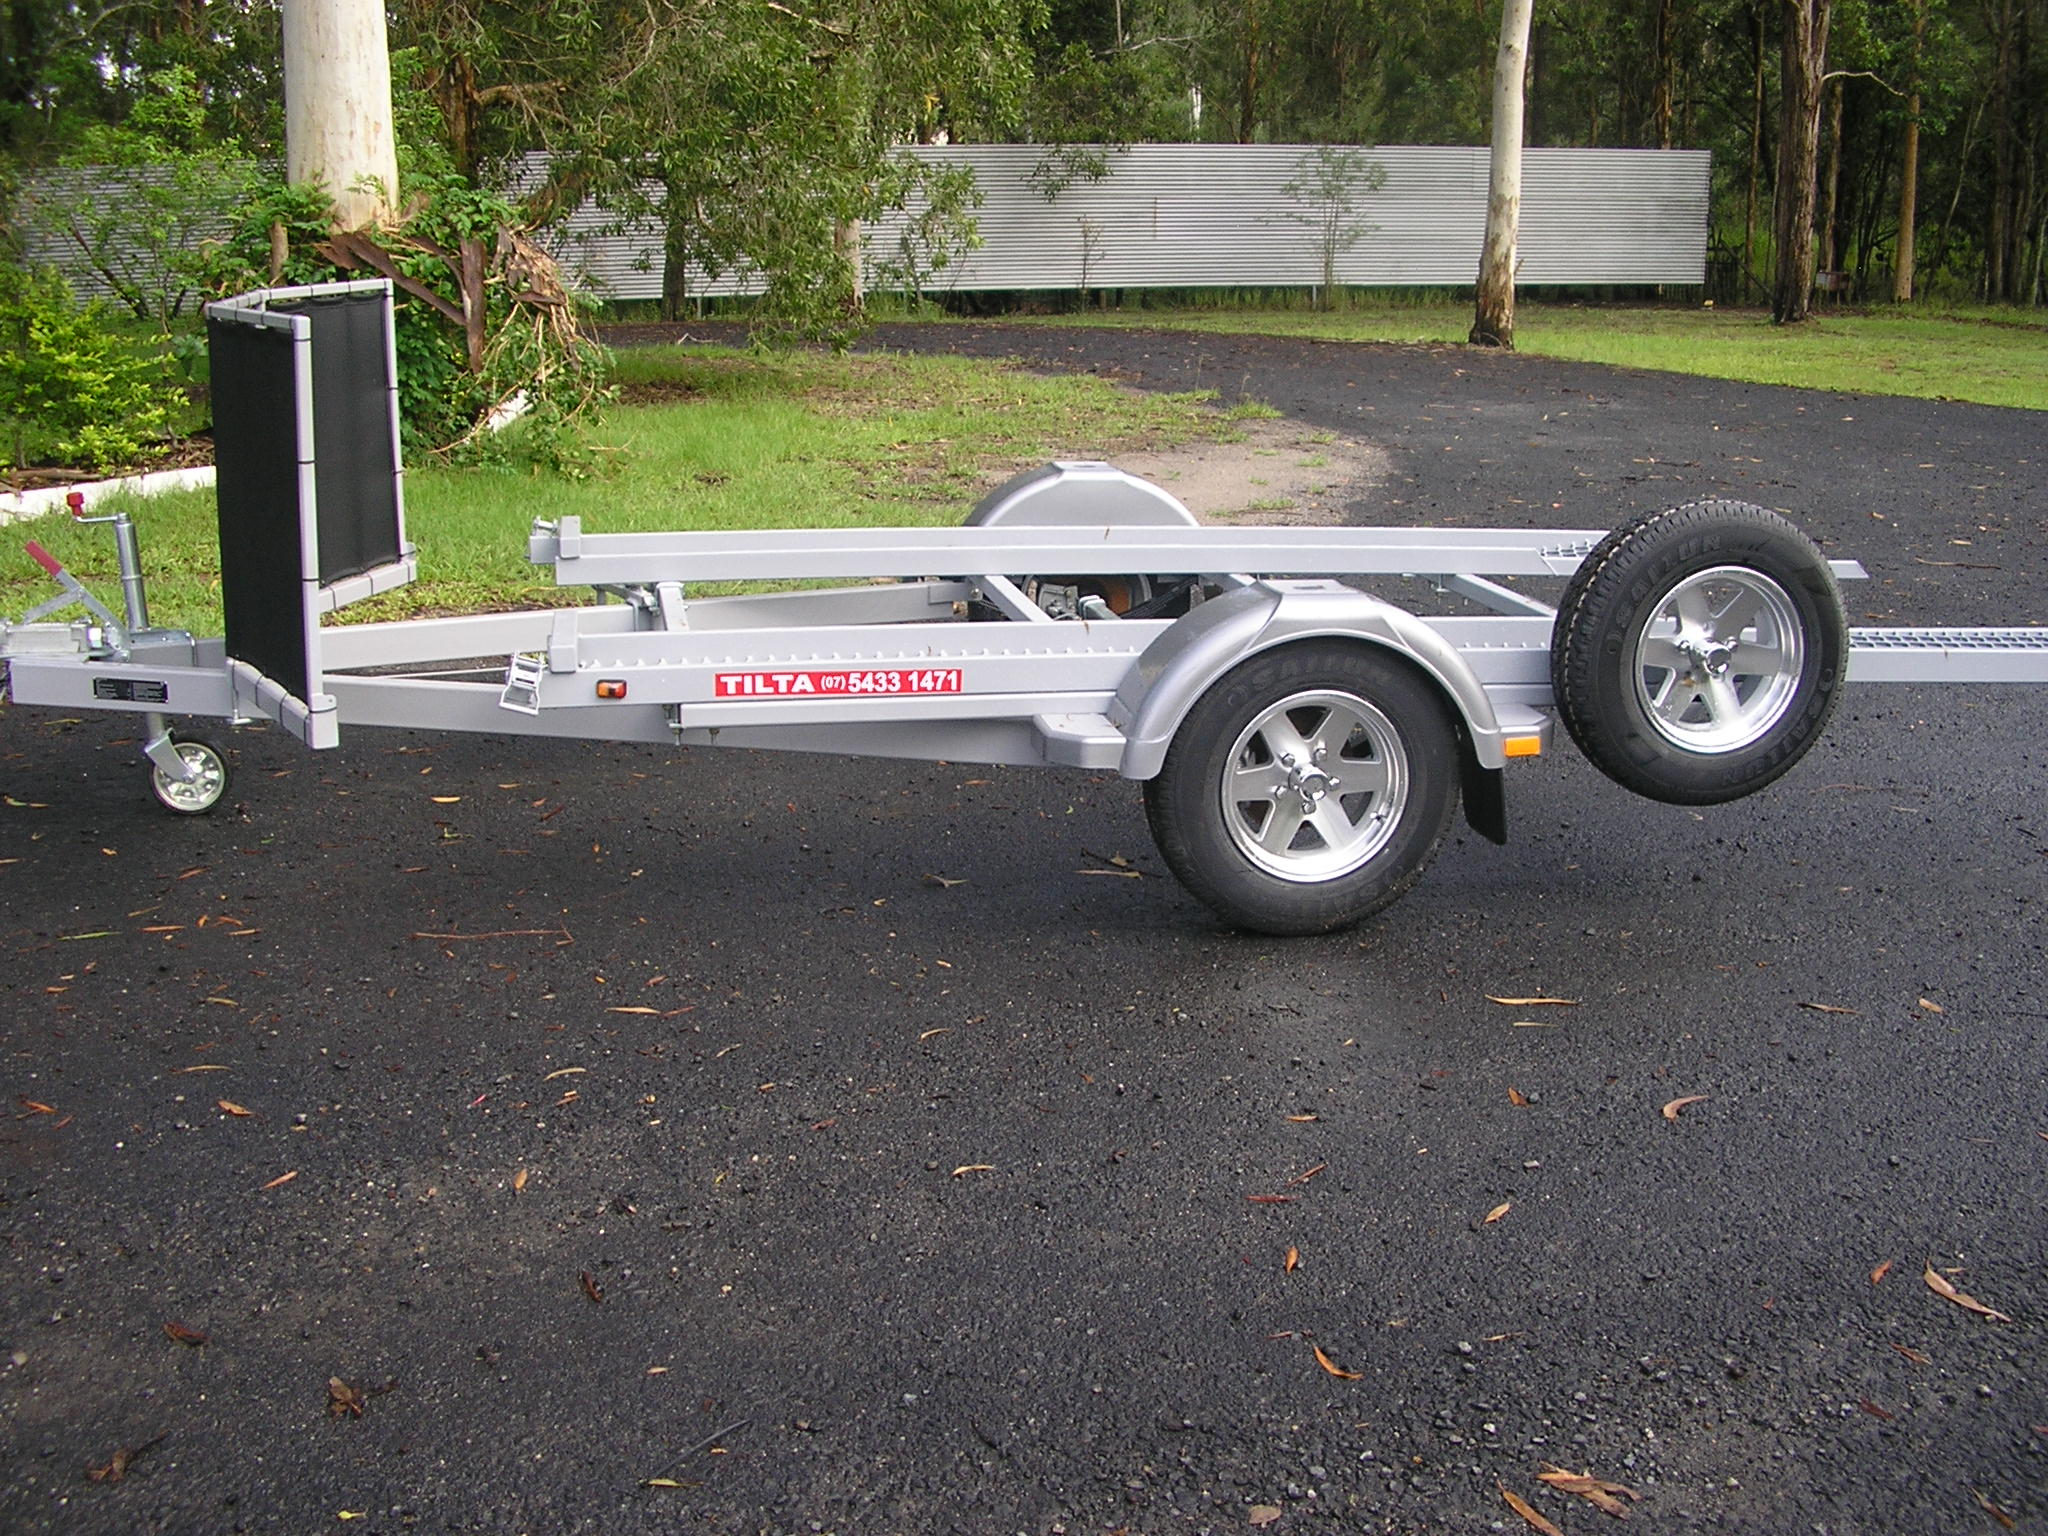 Single Axle Trailer Tilta Trailerstilta Trailers